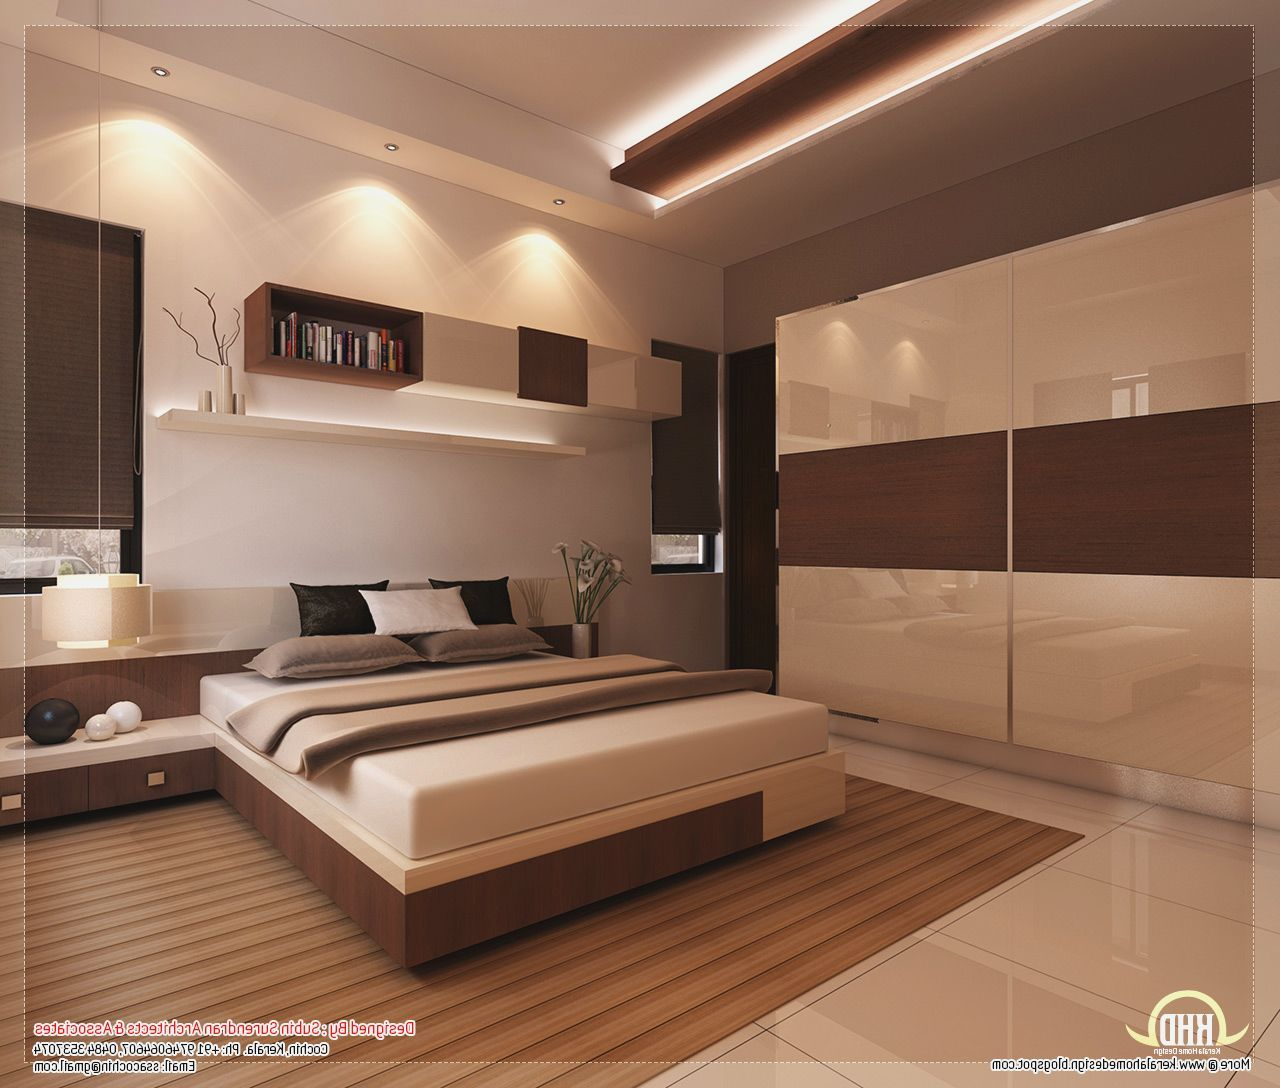 Bedroom designs india low cost more picture bedroom for Bedroom interior design india